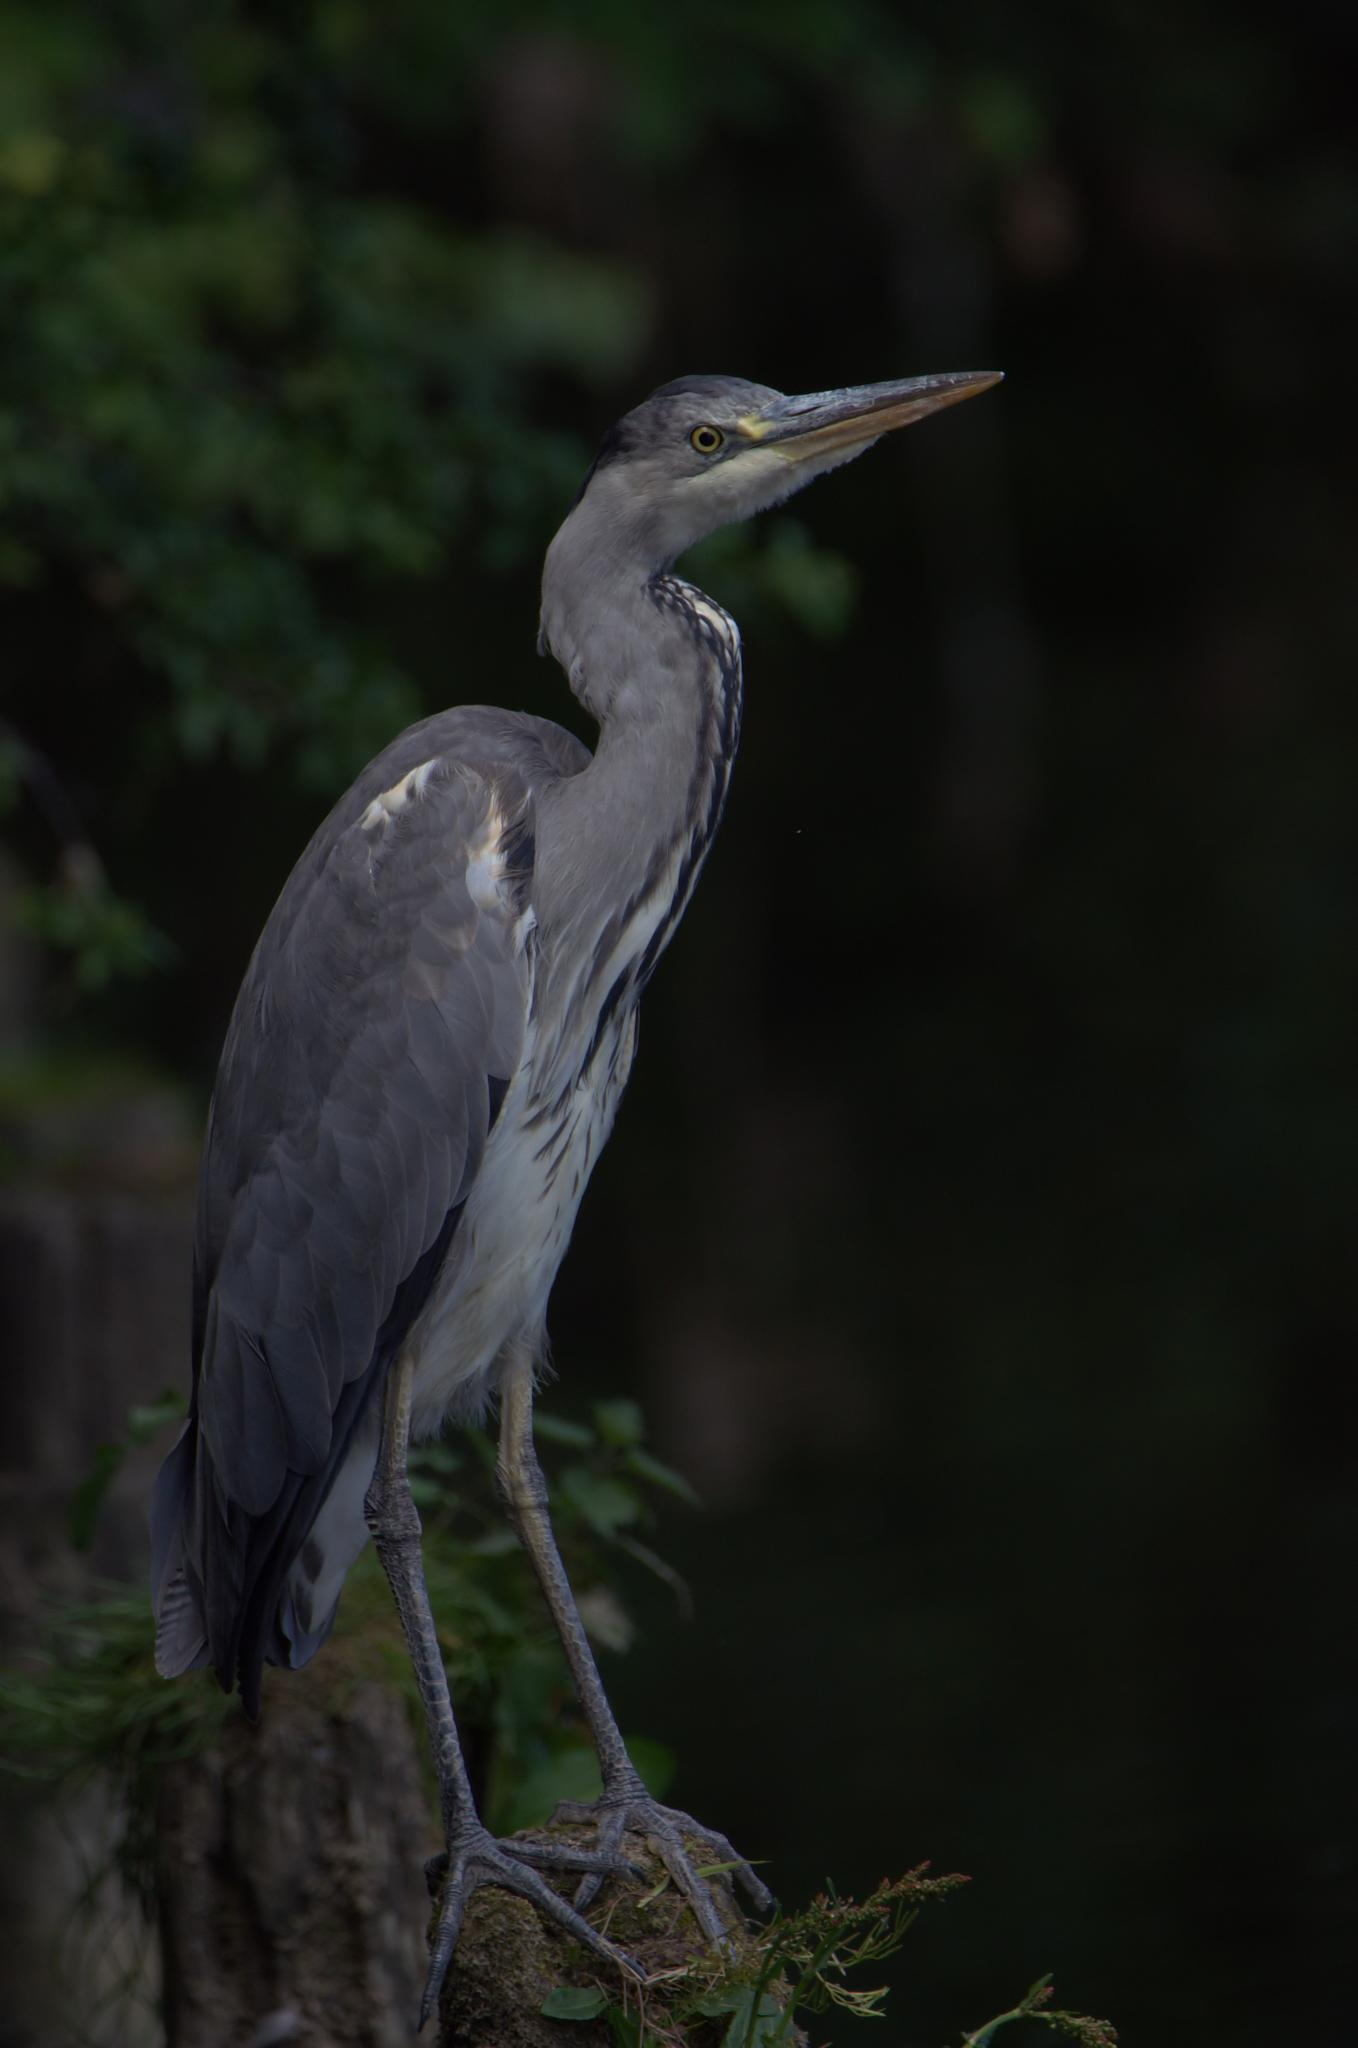 heron in the shadows by alan hillen